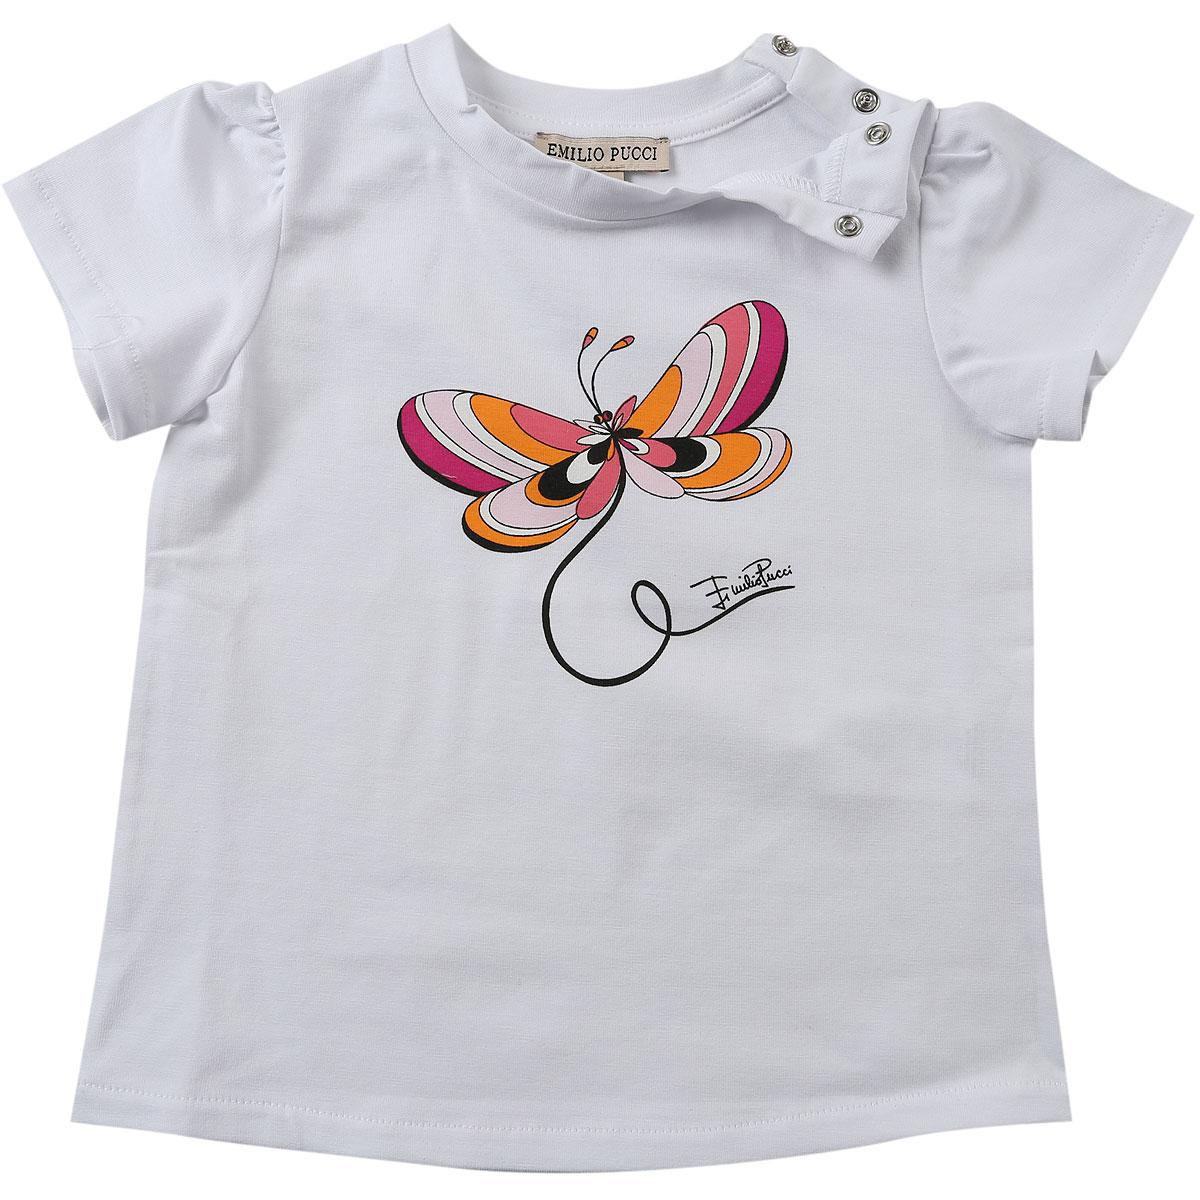 3757e8831774 Lyst - Emilio Pucci Baby T-shirt For Girls On Sale in White for Men